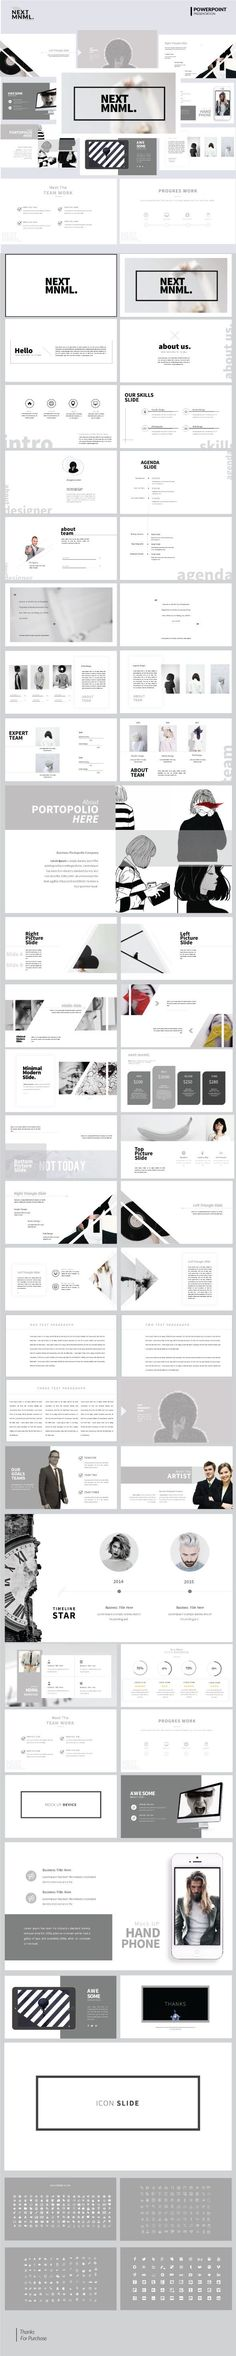 Next Mnml  Multipurpose PowerPoint Template — Powerpoint PPT #biz #swot analysis • Available here ➝ https://graphicriver.net/item/next-mnml-multipurpose-powerpoint-template/20593549?ref=pxcr